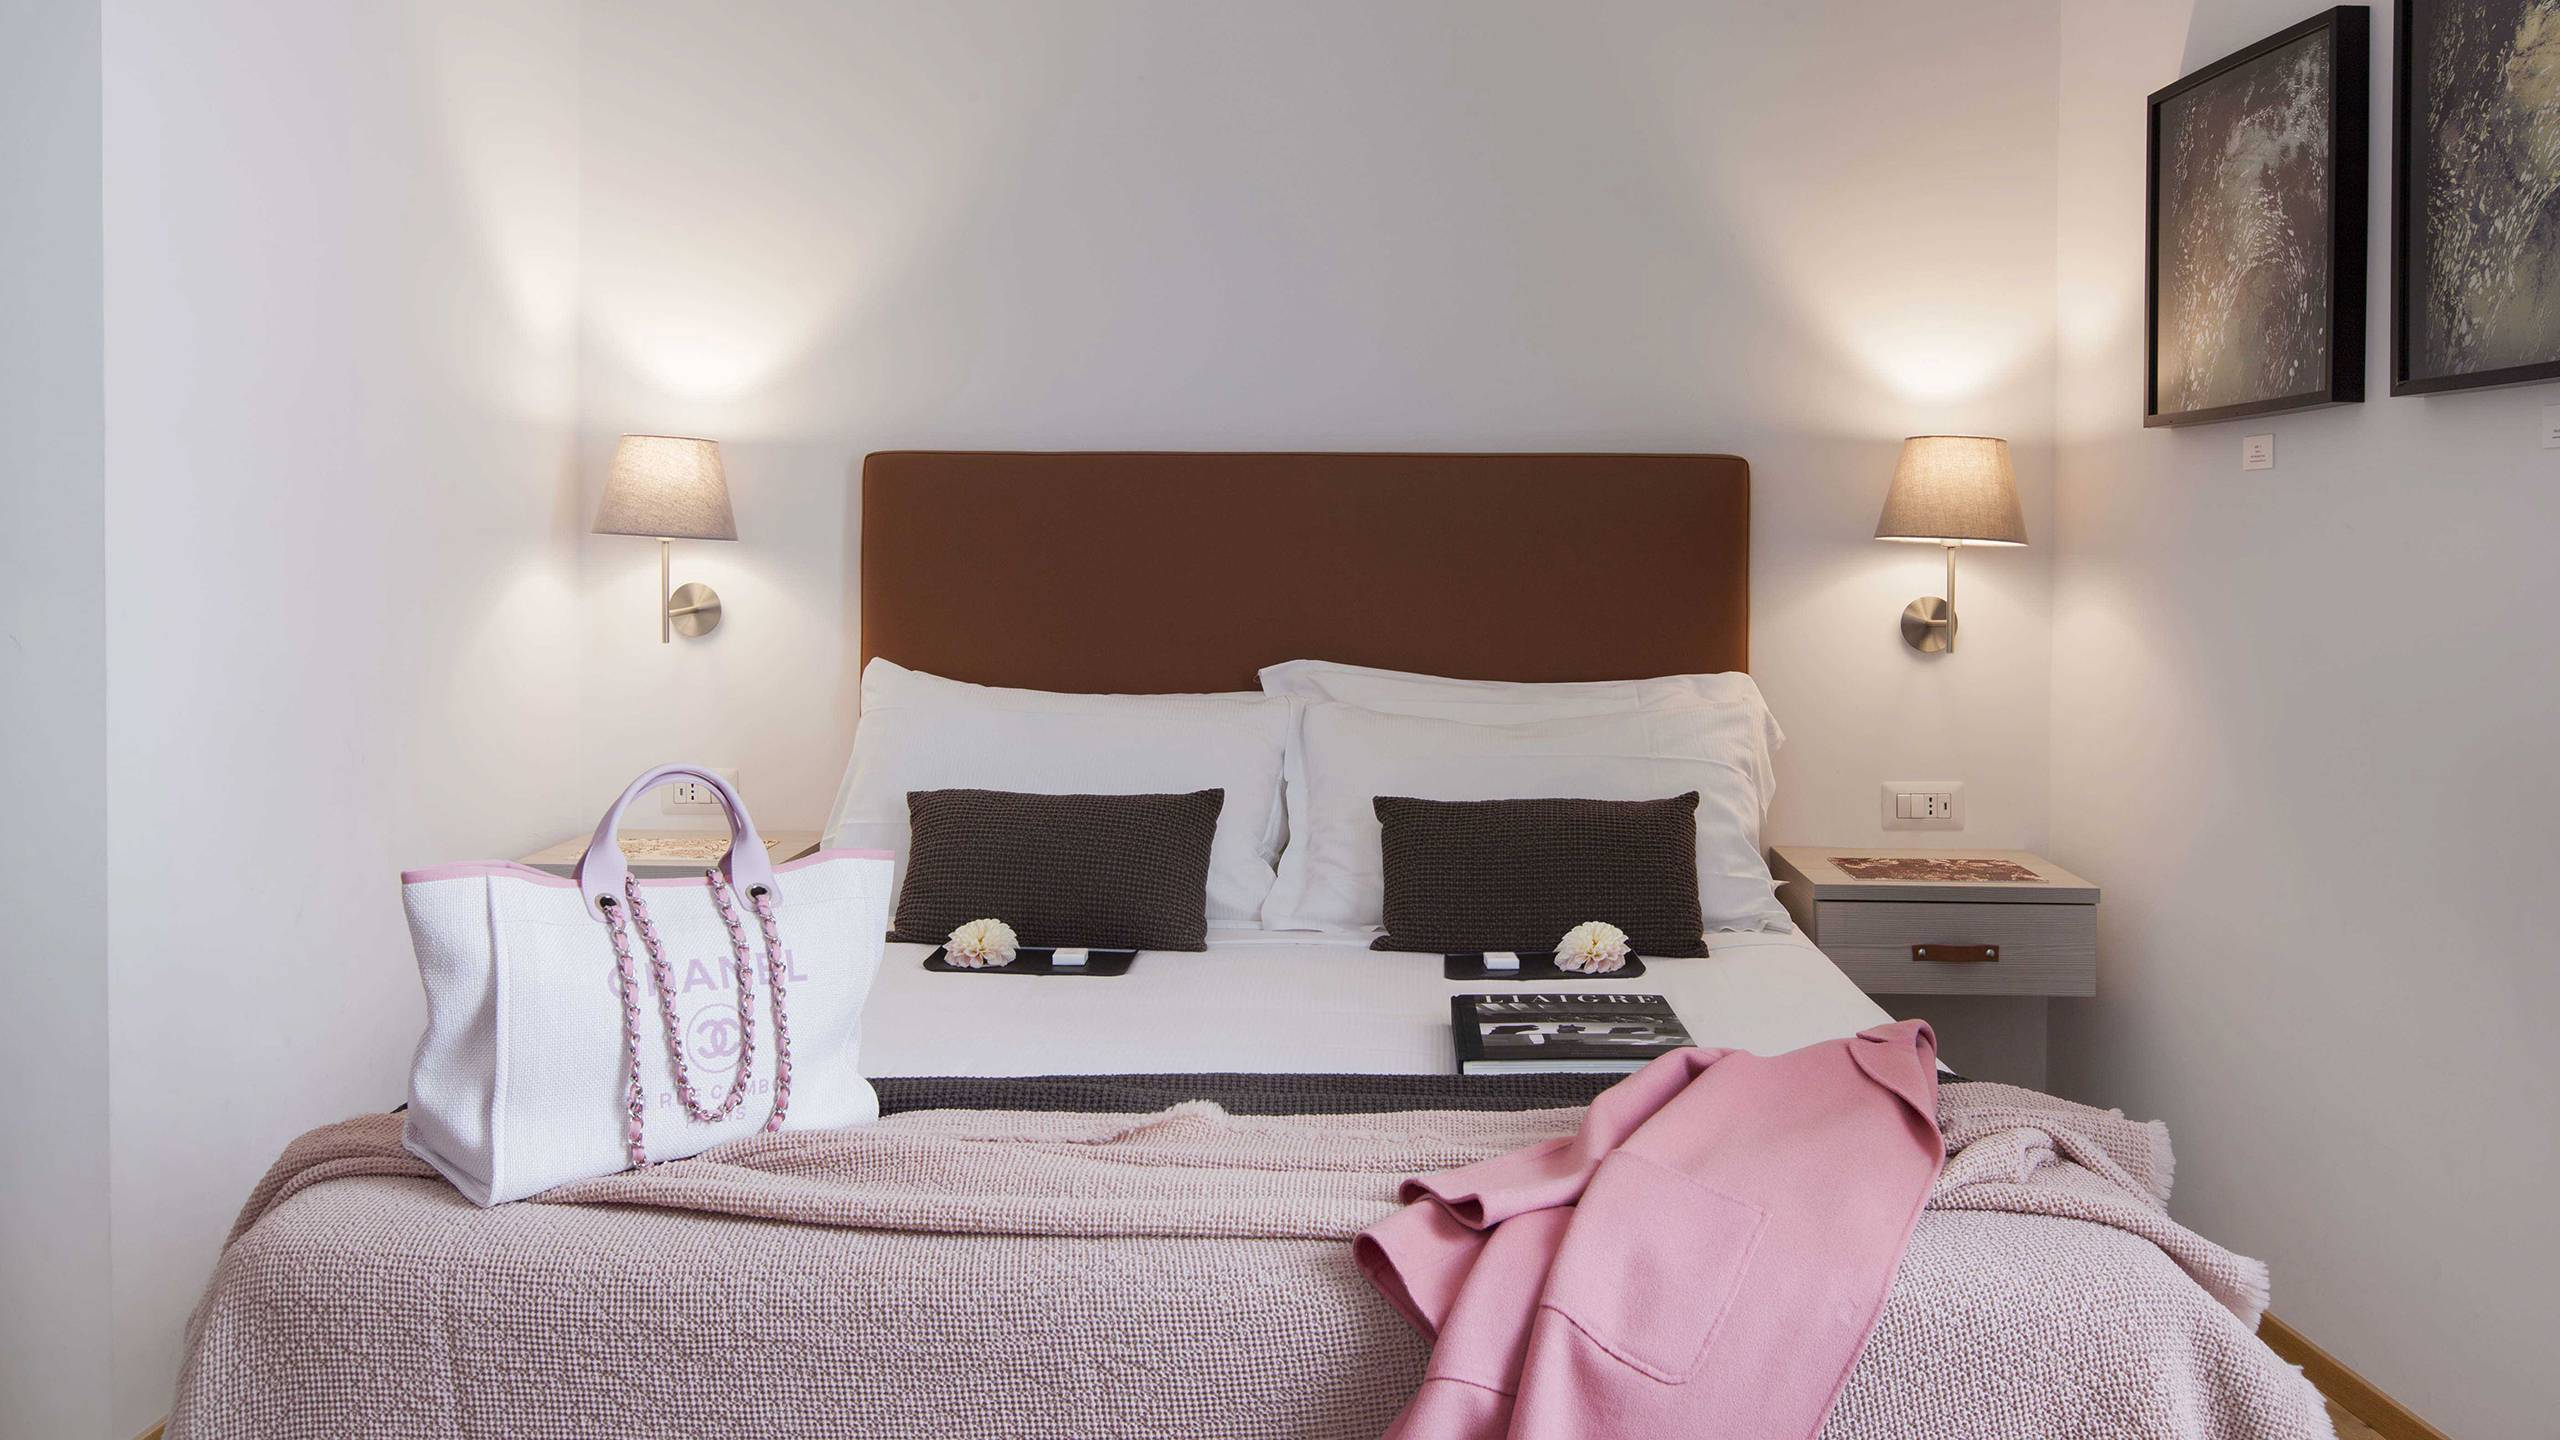 gh-collection-rome-giuturna-boutique-hotel-room-pink-2-4105